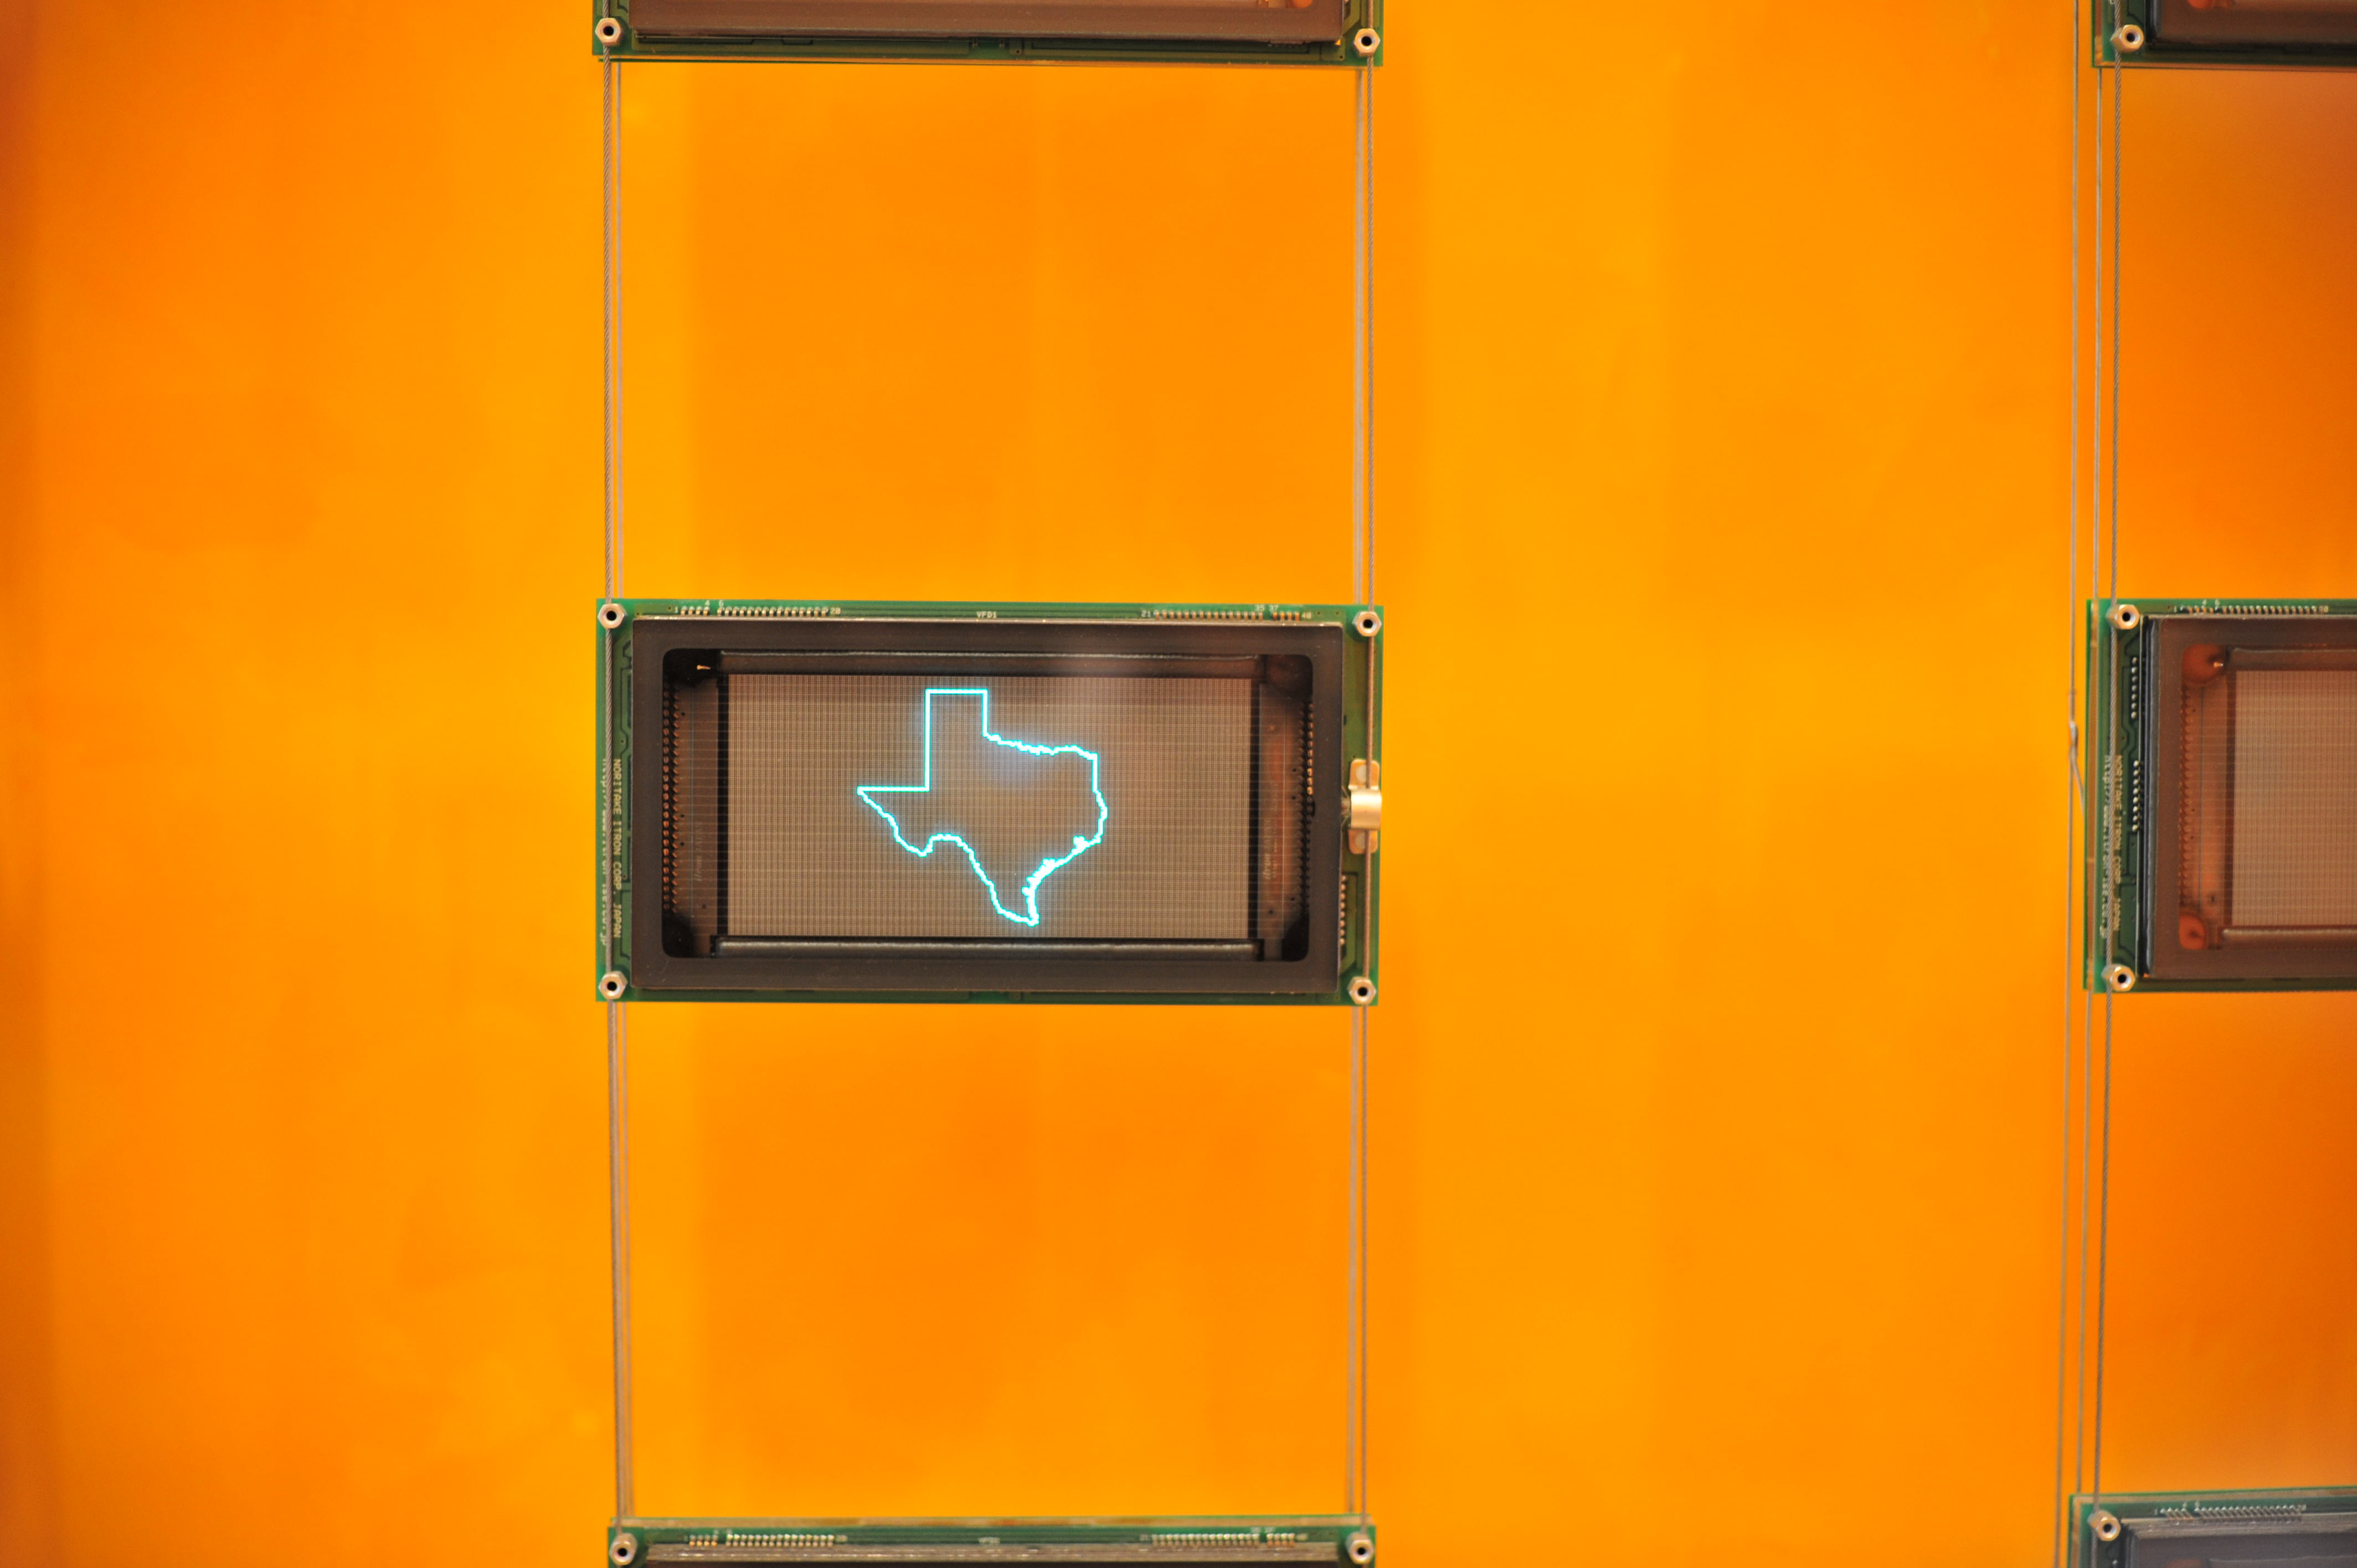 Texas LCD at New York Times building1 Comment